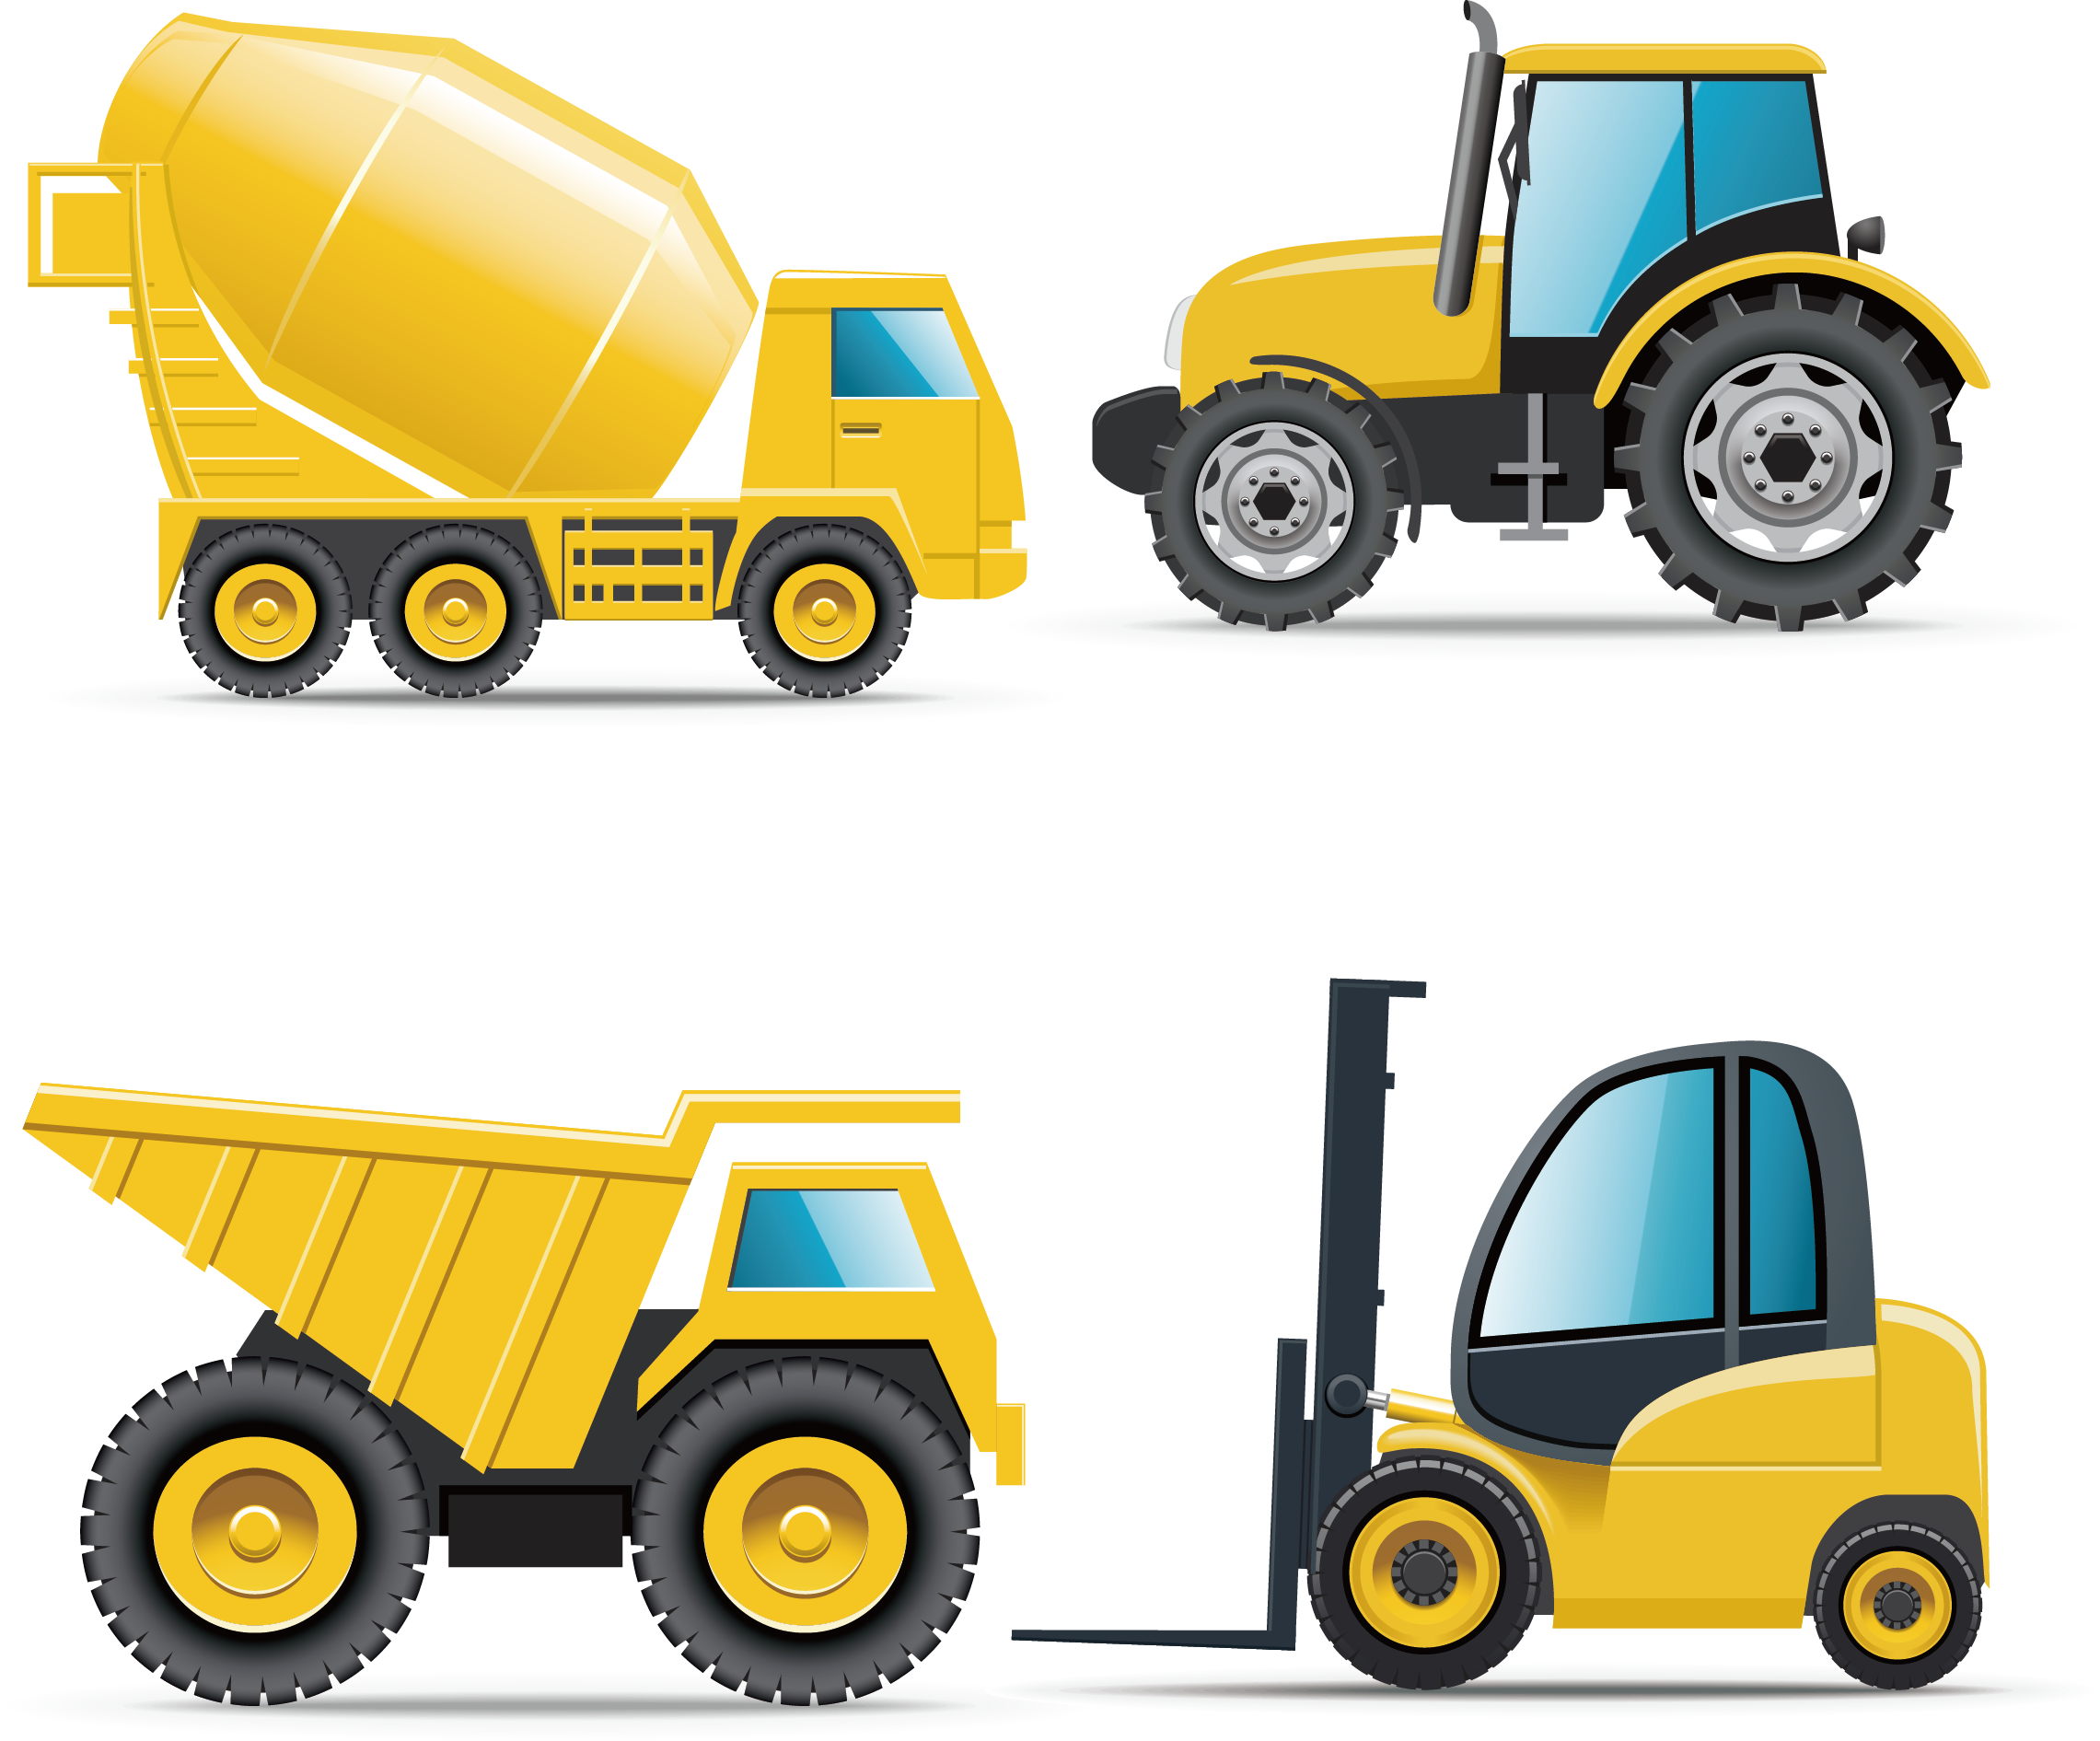 Car heavy equipment architectural. Engineering clipart engineering wheel